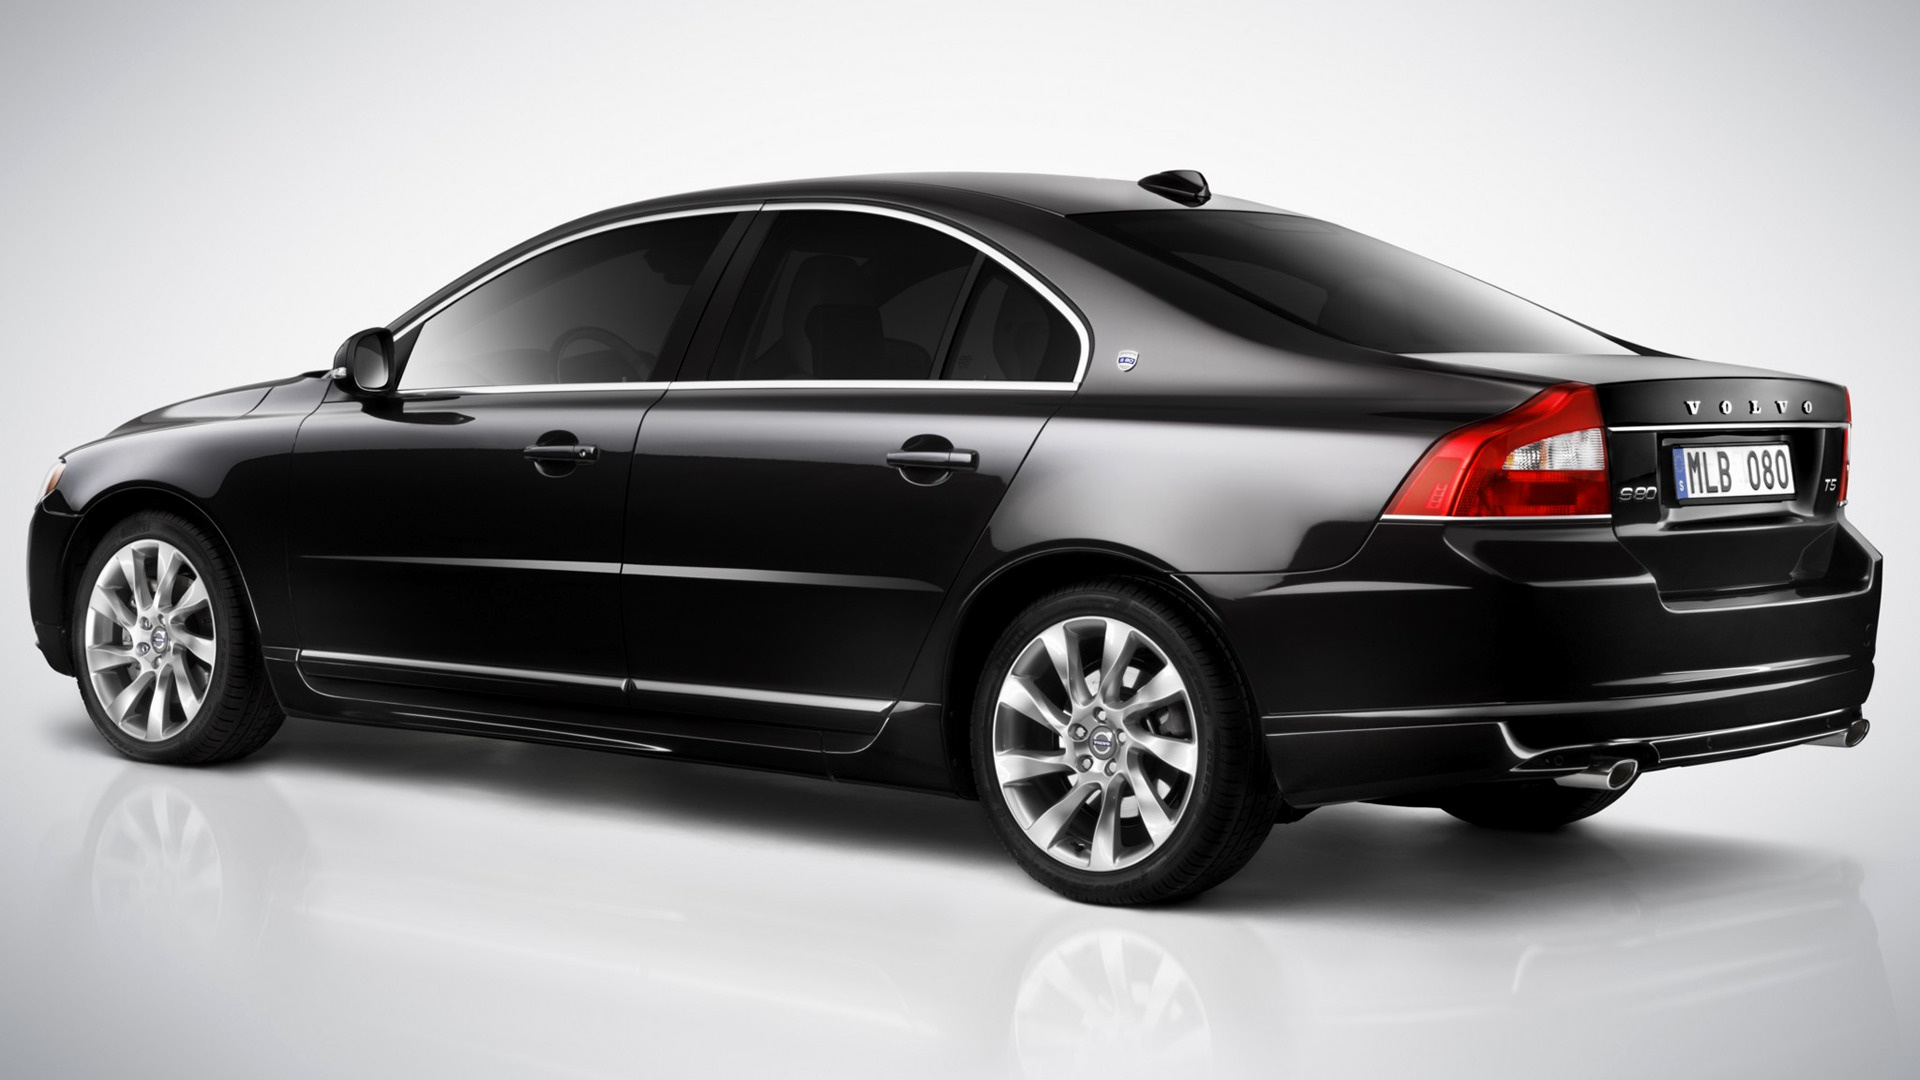 Volvo S80 Executive (2011) Wallpapers and HD Images - Car Pixel